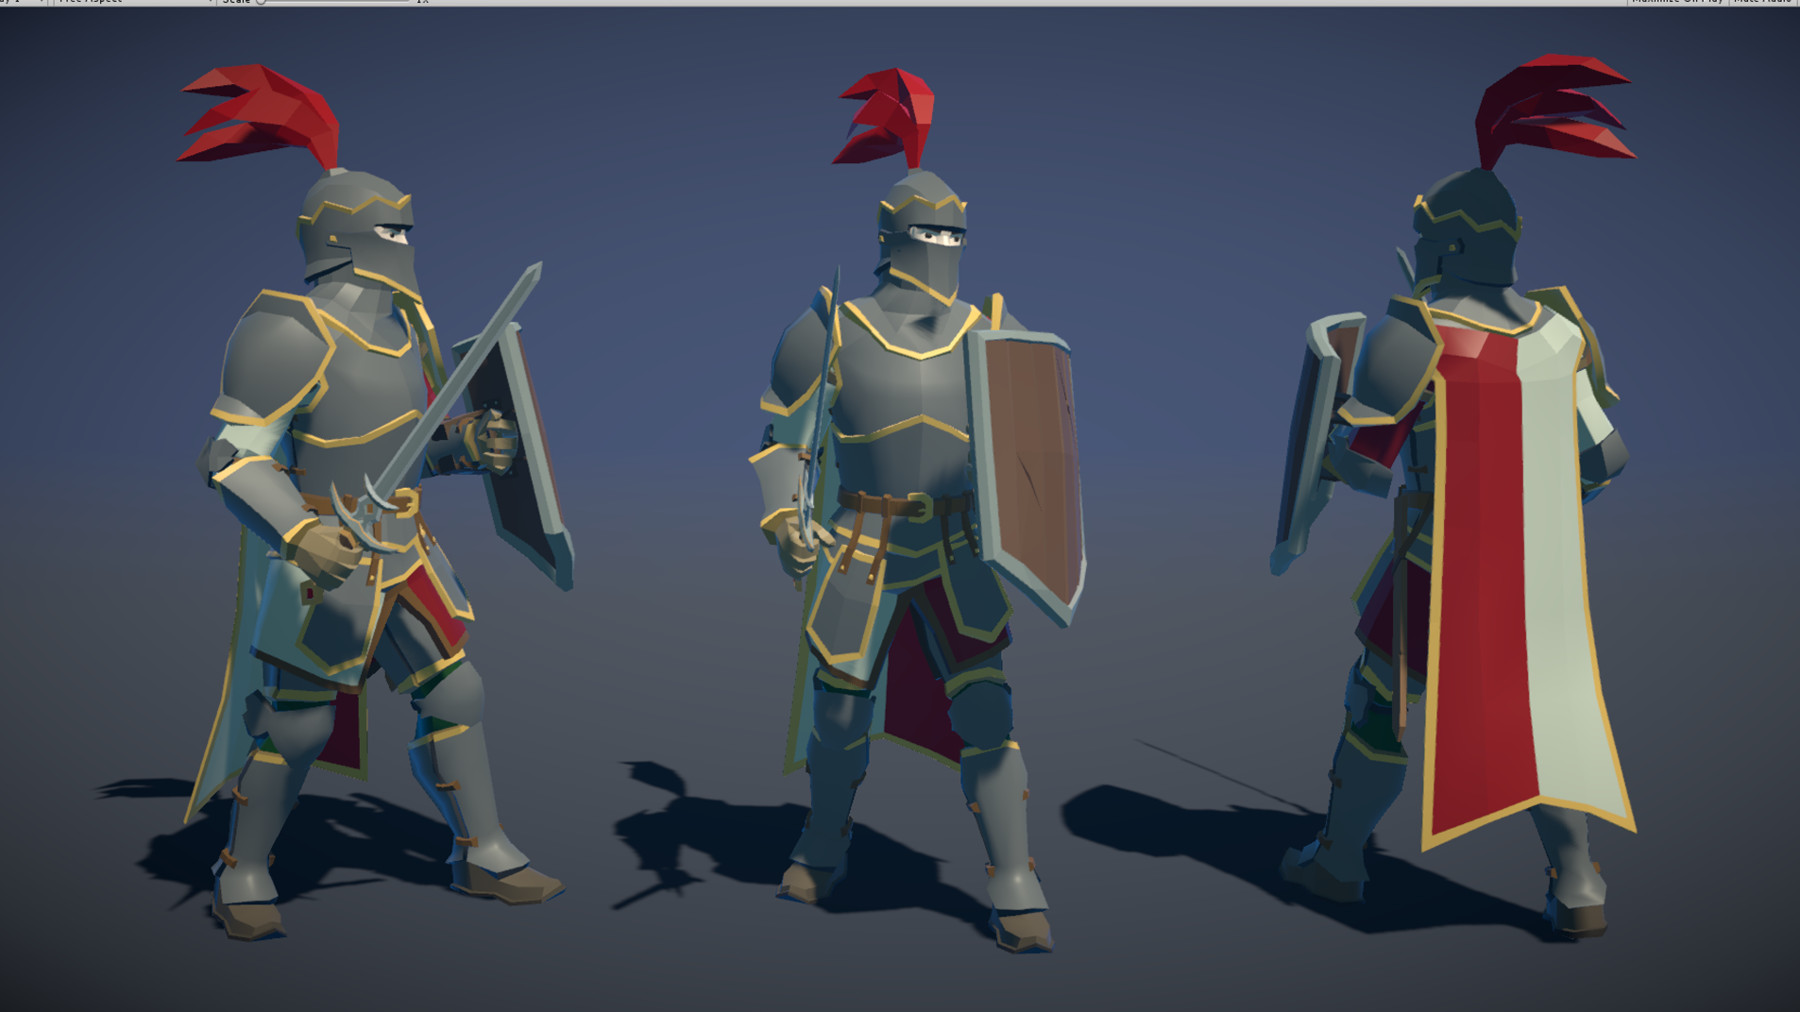 Pt medieval lowpoly characters knight 02